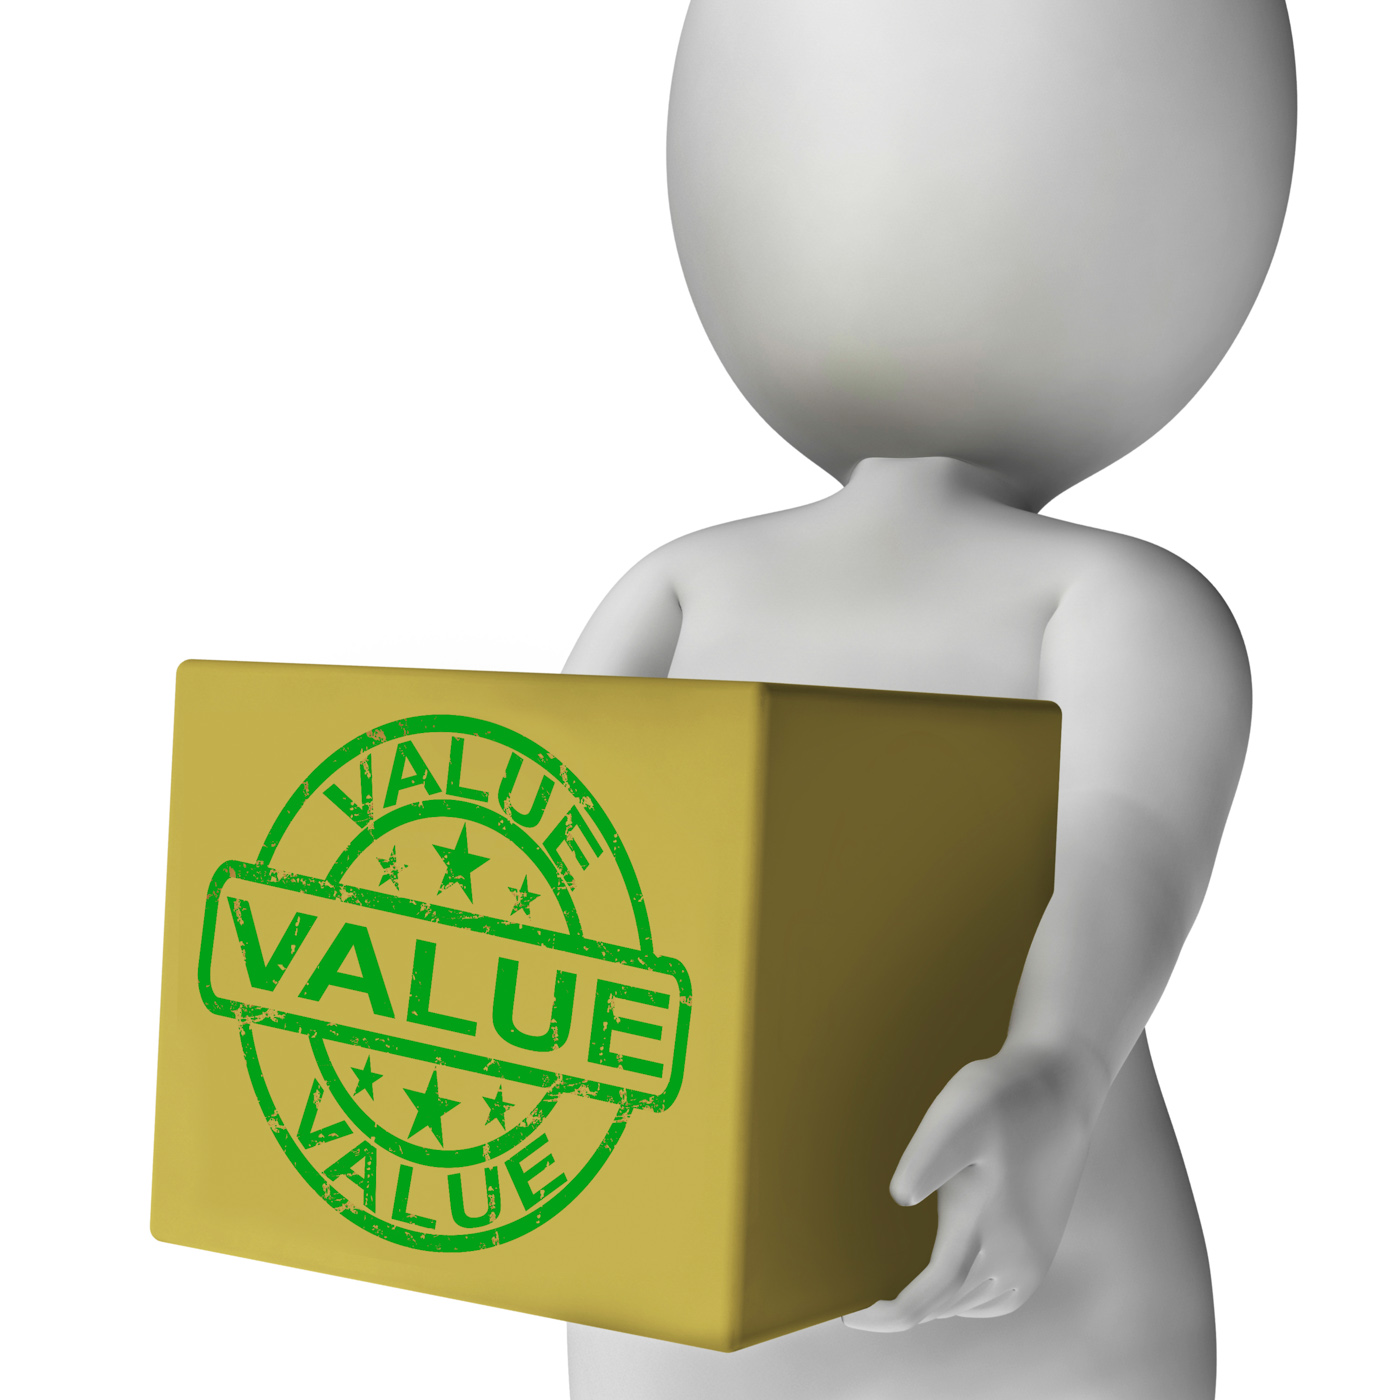 Value box means quality and worth of goods photo